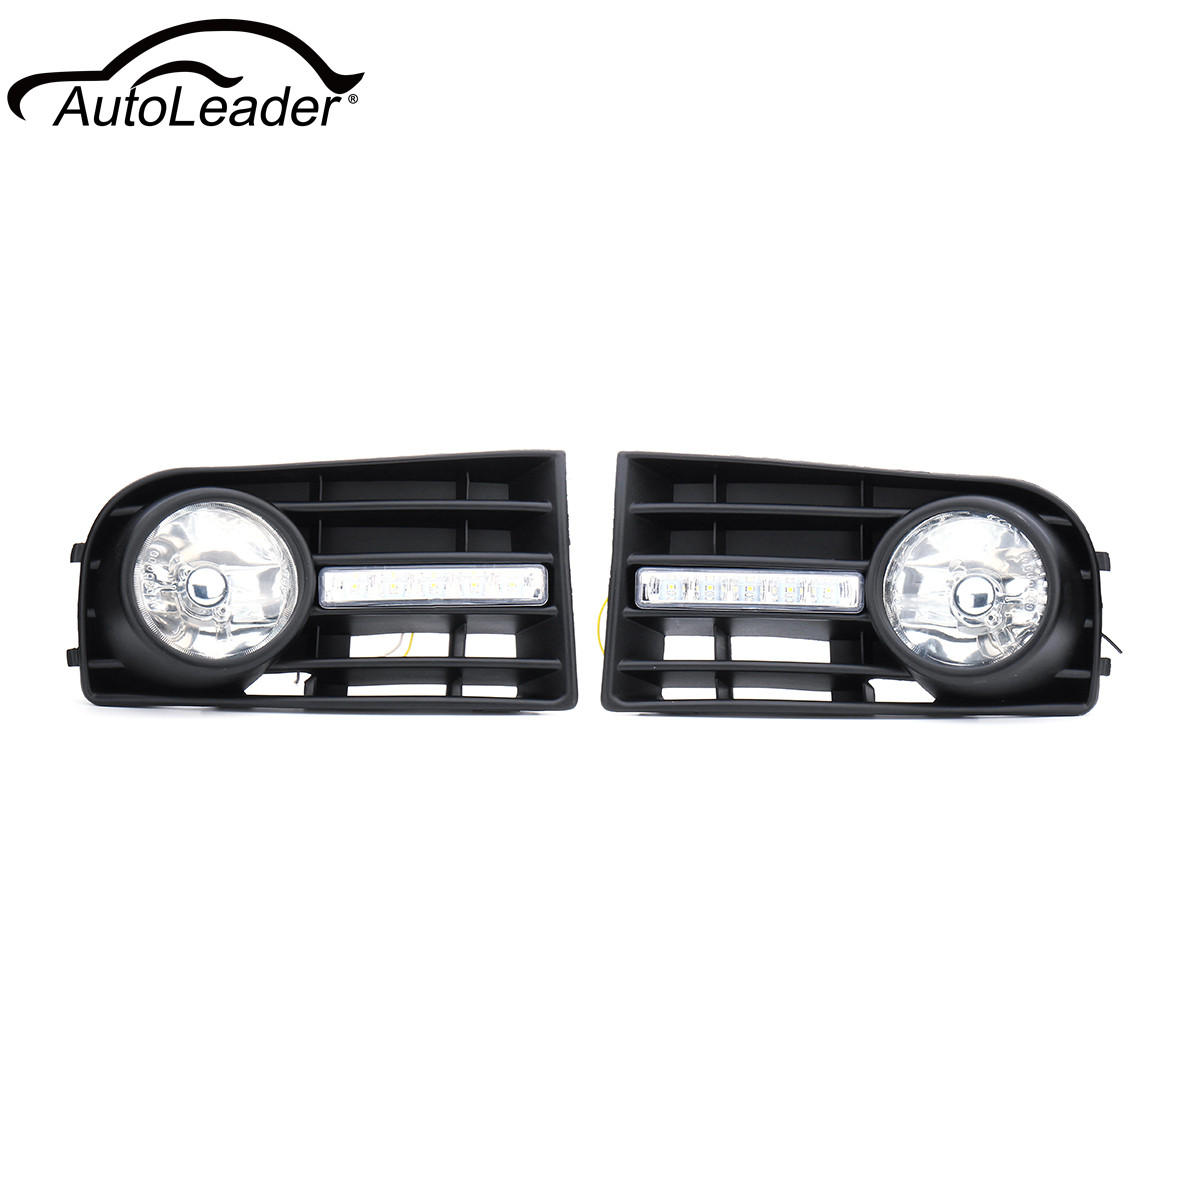 Pair Car Front DRL Fog Light Lamps Grilles + Wiring Harness Switch Fog Lamp For VW Golf 5 2006-2009 Yellow Light for infiniti fx35 37 45 50 ex35 37 h11 wiring harness sockets wire connector switch 2 fog lights drl front bumper led lamp